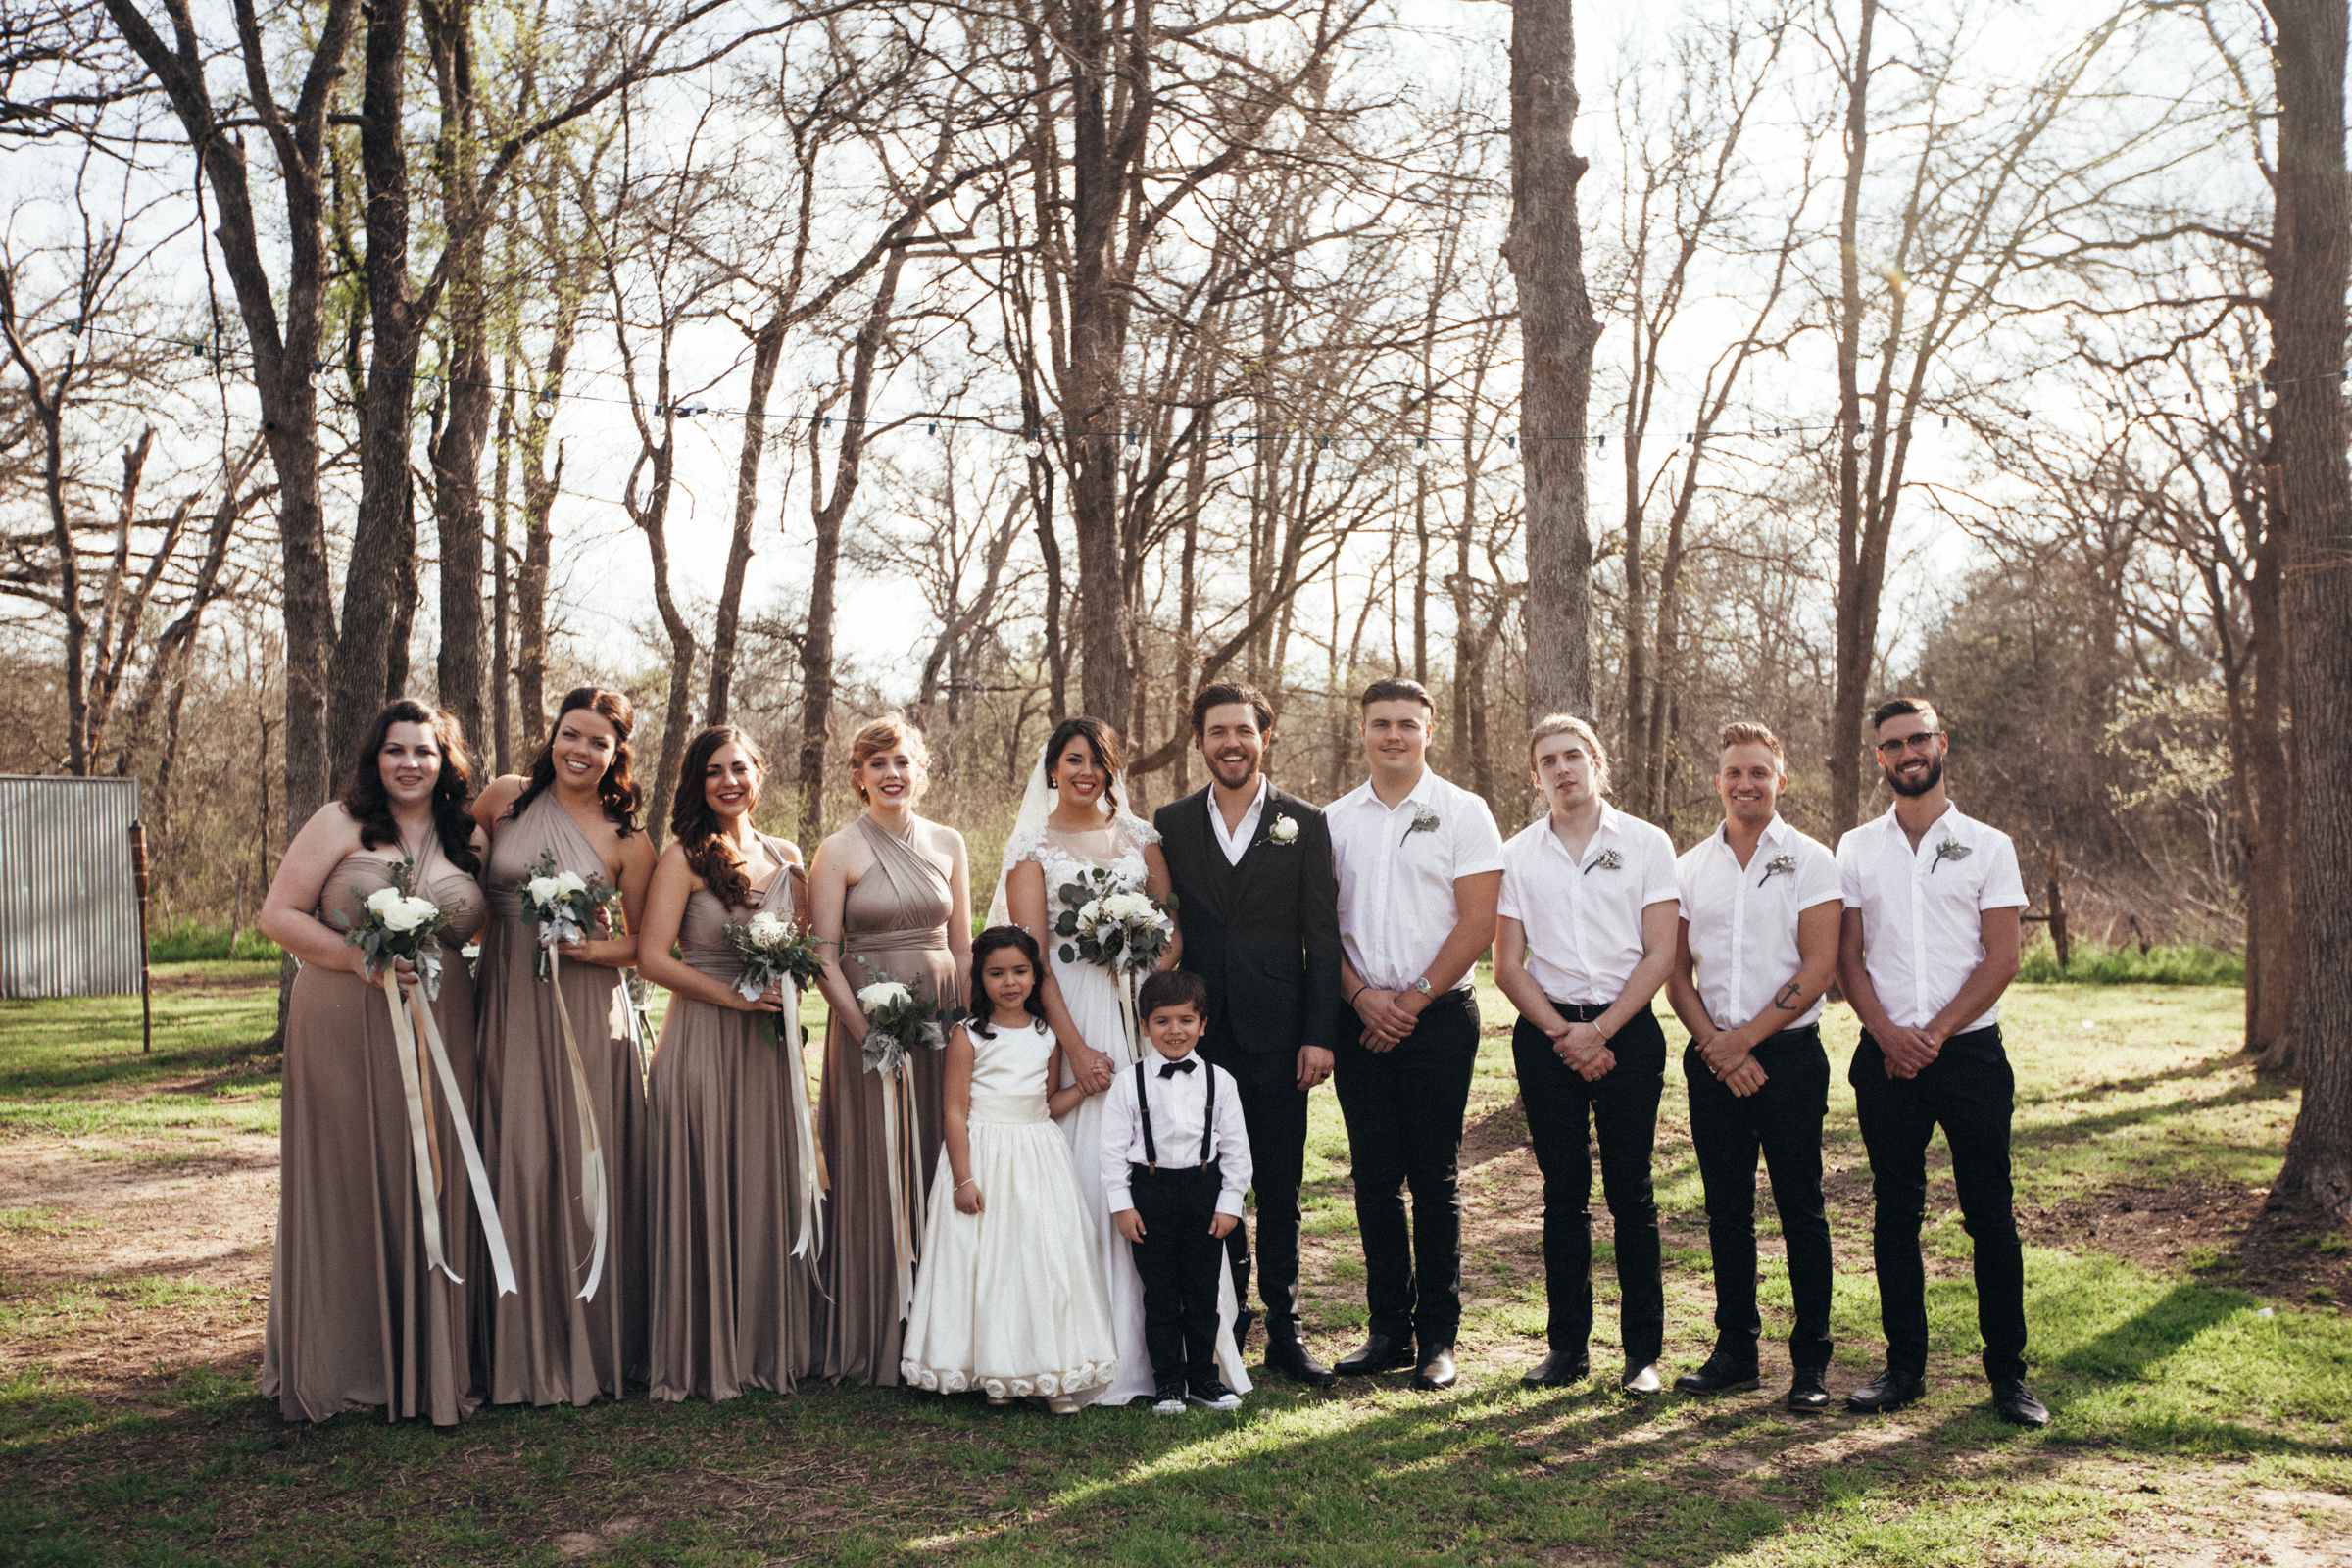 The Day We Wed | All the Delights